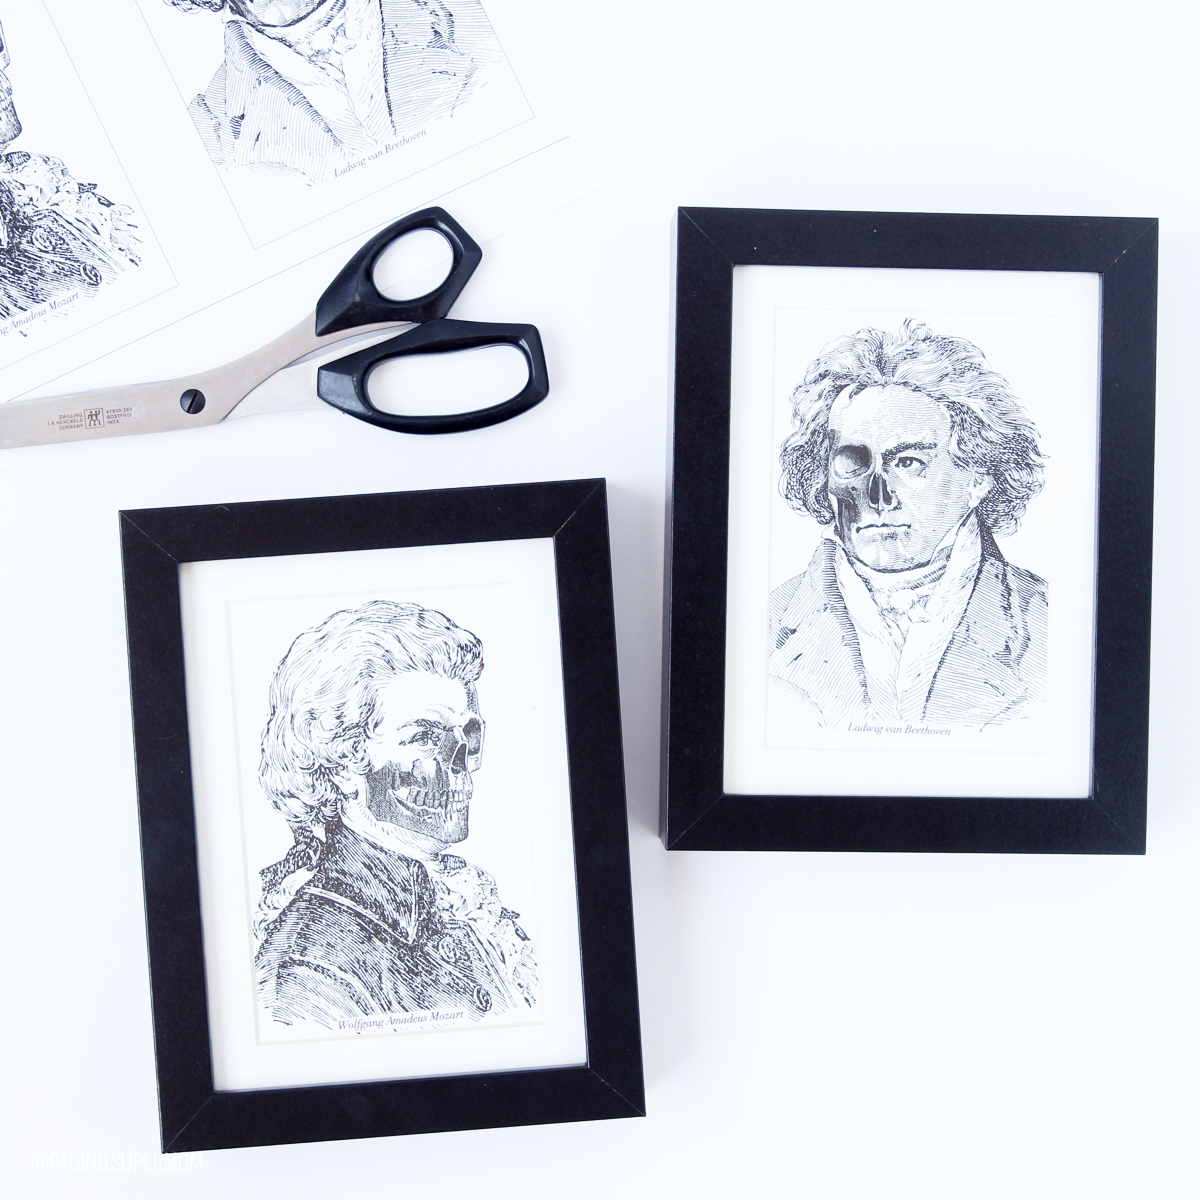 dFree Halloween decor prints - Zombie Composers Beethoven and Mozart - free prints from @PagingSupermom